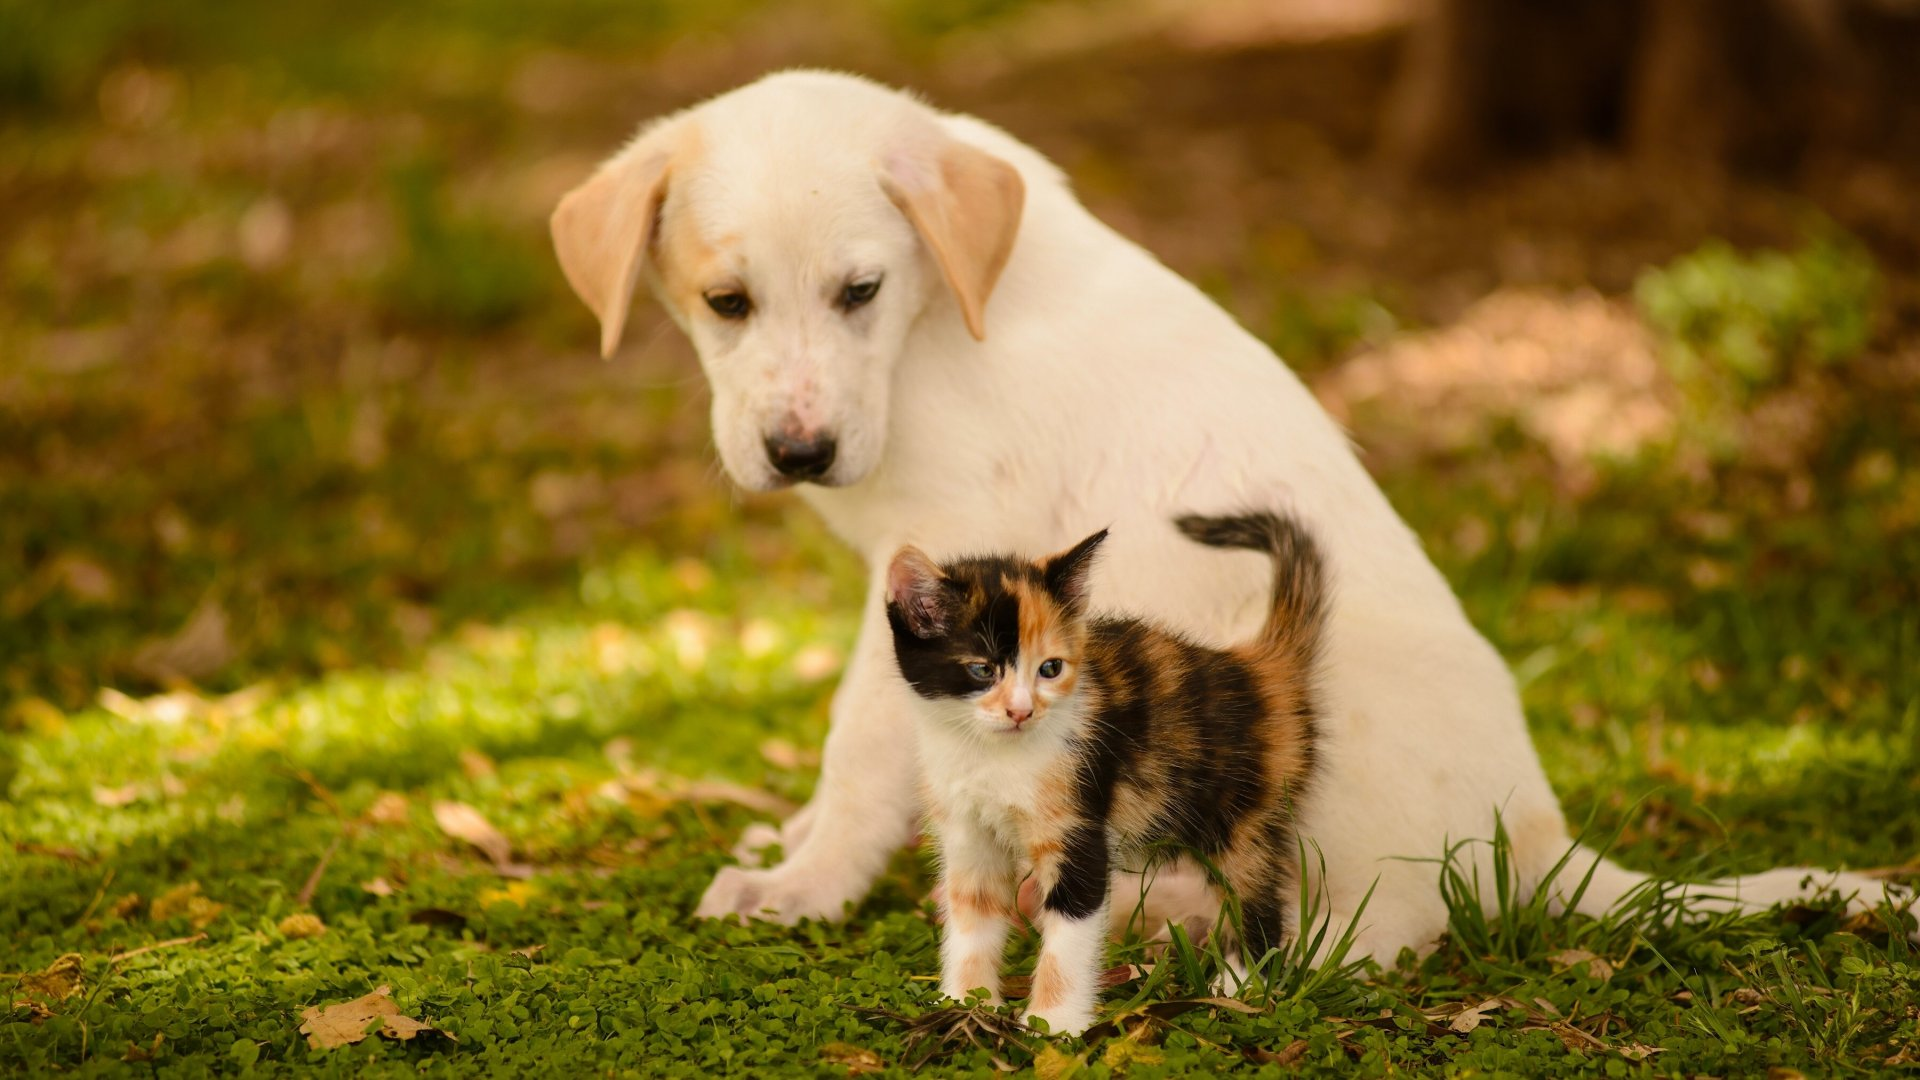 Cute Dog And Cat Wallpaper Pixelstalknet Dogs And Cats Hd